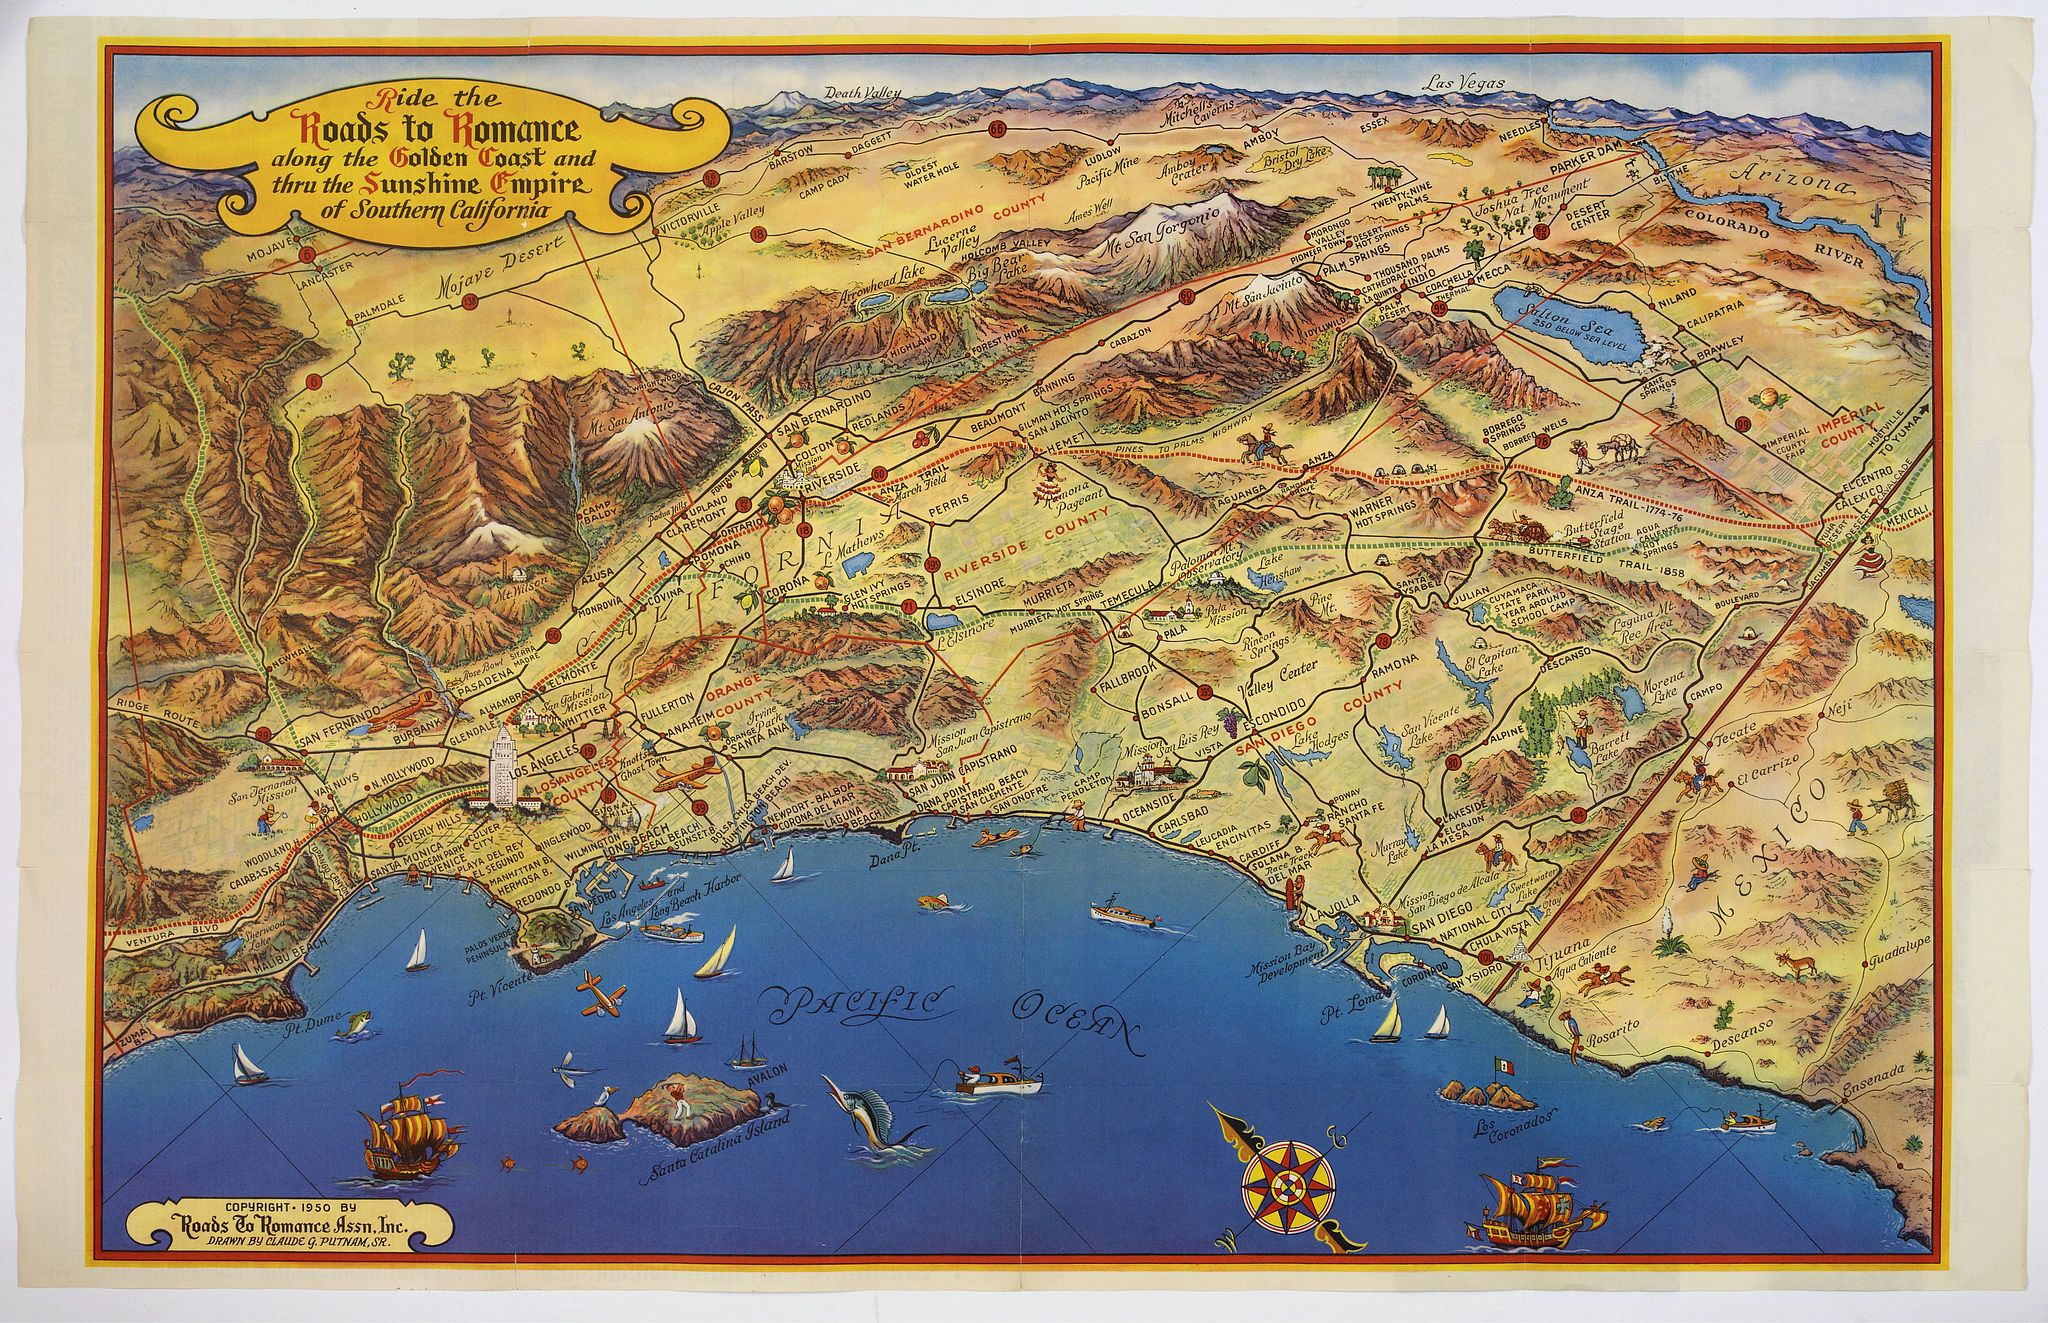 ROADS TO ROMANCE ASSOCIATION INC.,  Ride the Roads to Romance along the Golden Coast and thru the Sunshine Empire of Southern California., antique map, old maps